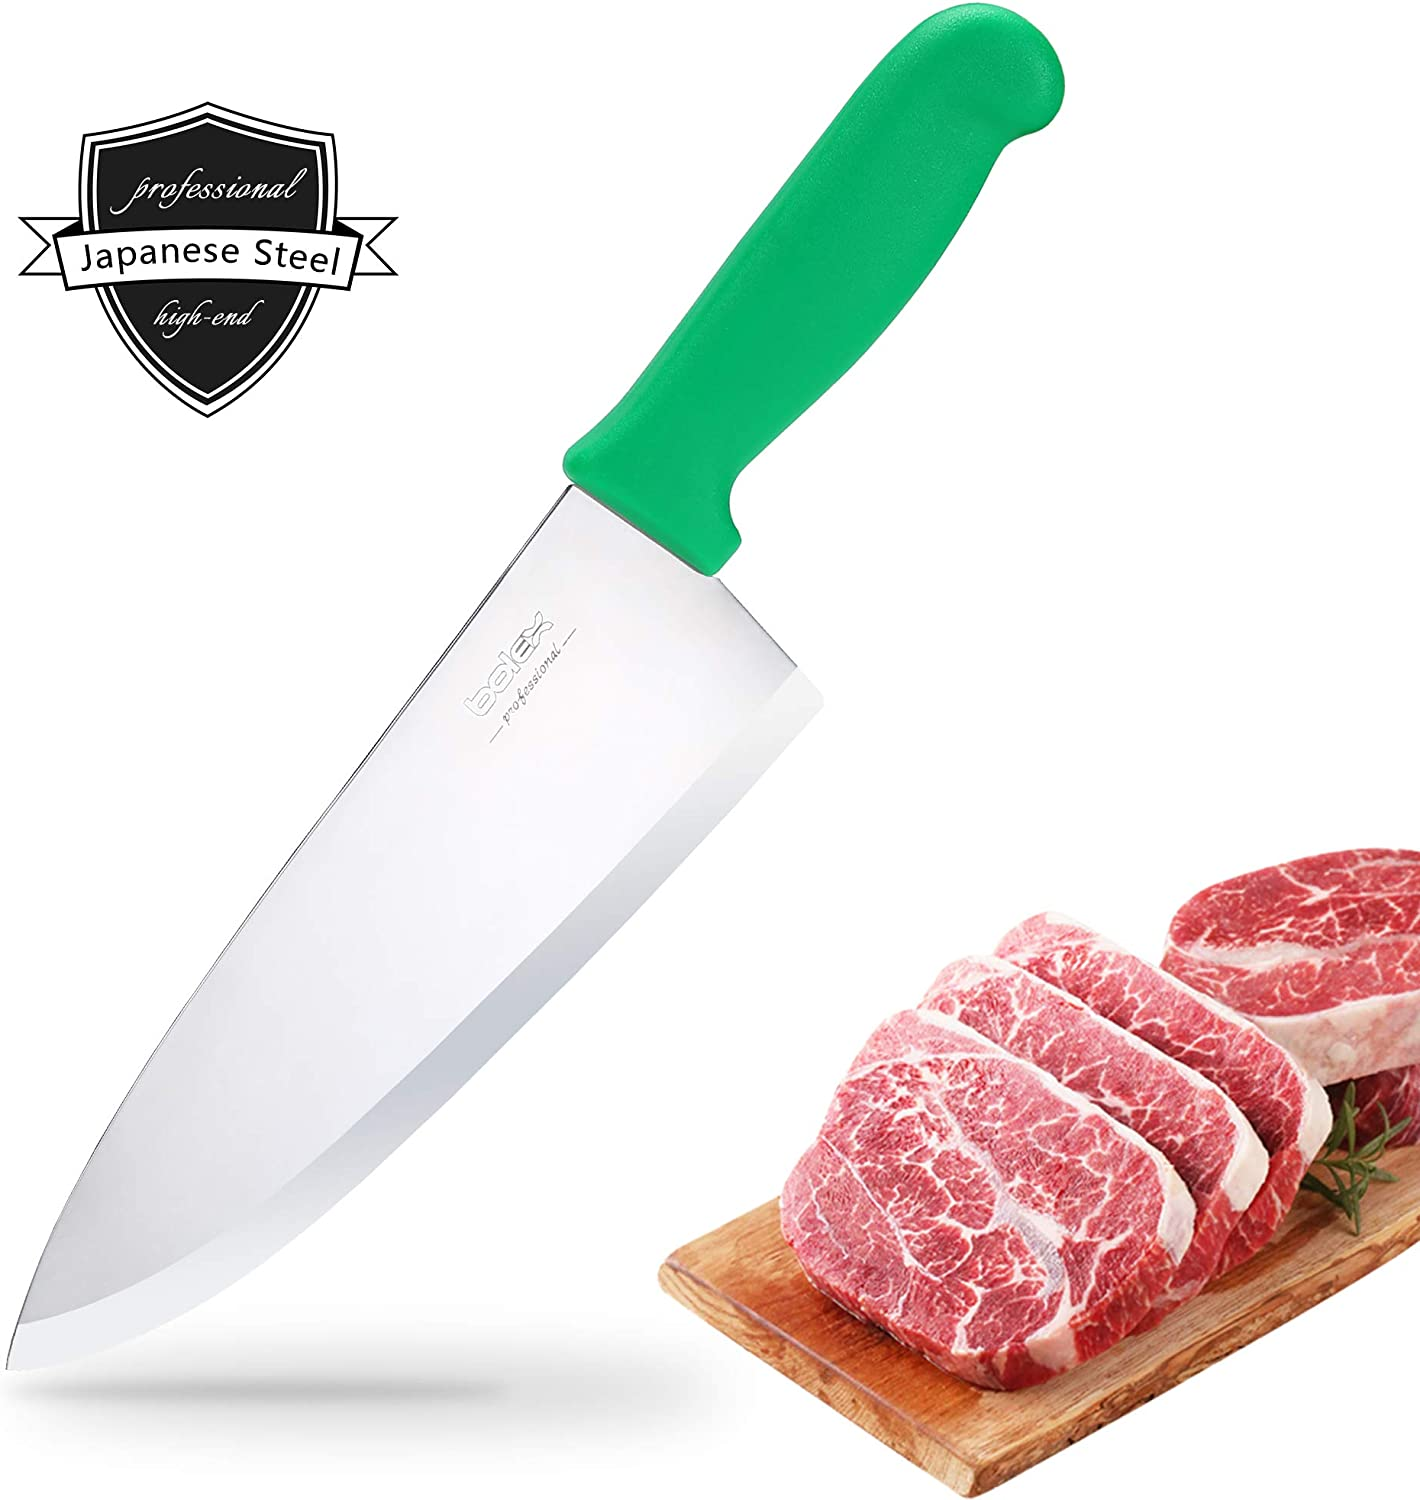 BOLEX 8 inch Stainless Steel Chef Knife/chopping knife, Professional Extra Sharp Wide Cook Knife Multi-Purpose Hand Forged Knife for Kitchen Home Restaurant (Green Handle)